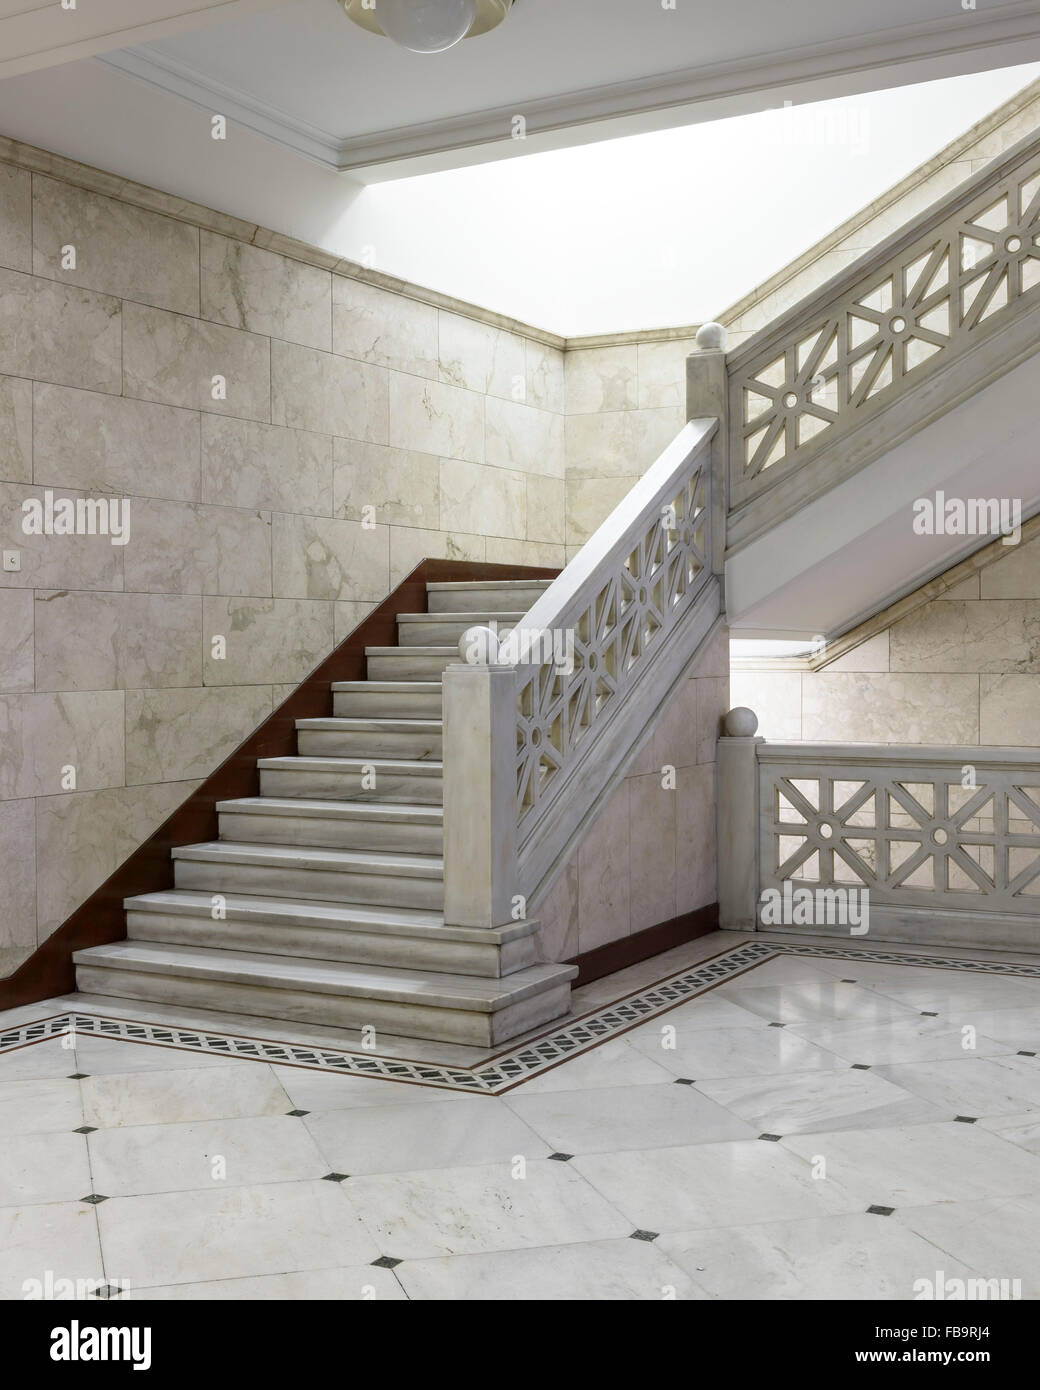 Staircase at the Archeological Society at Athens. Institutions of Athens, Athens, Greece. Architect: N/A, 2015. Stock Photo